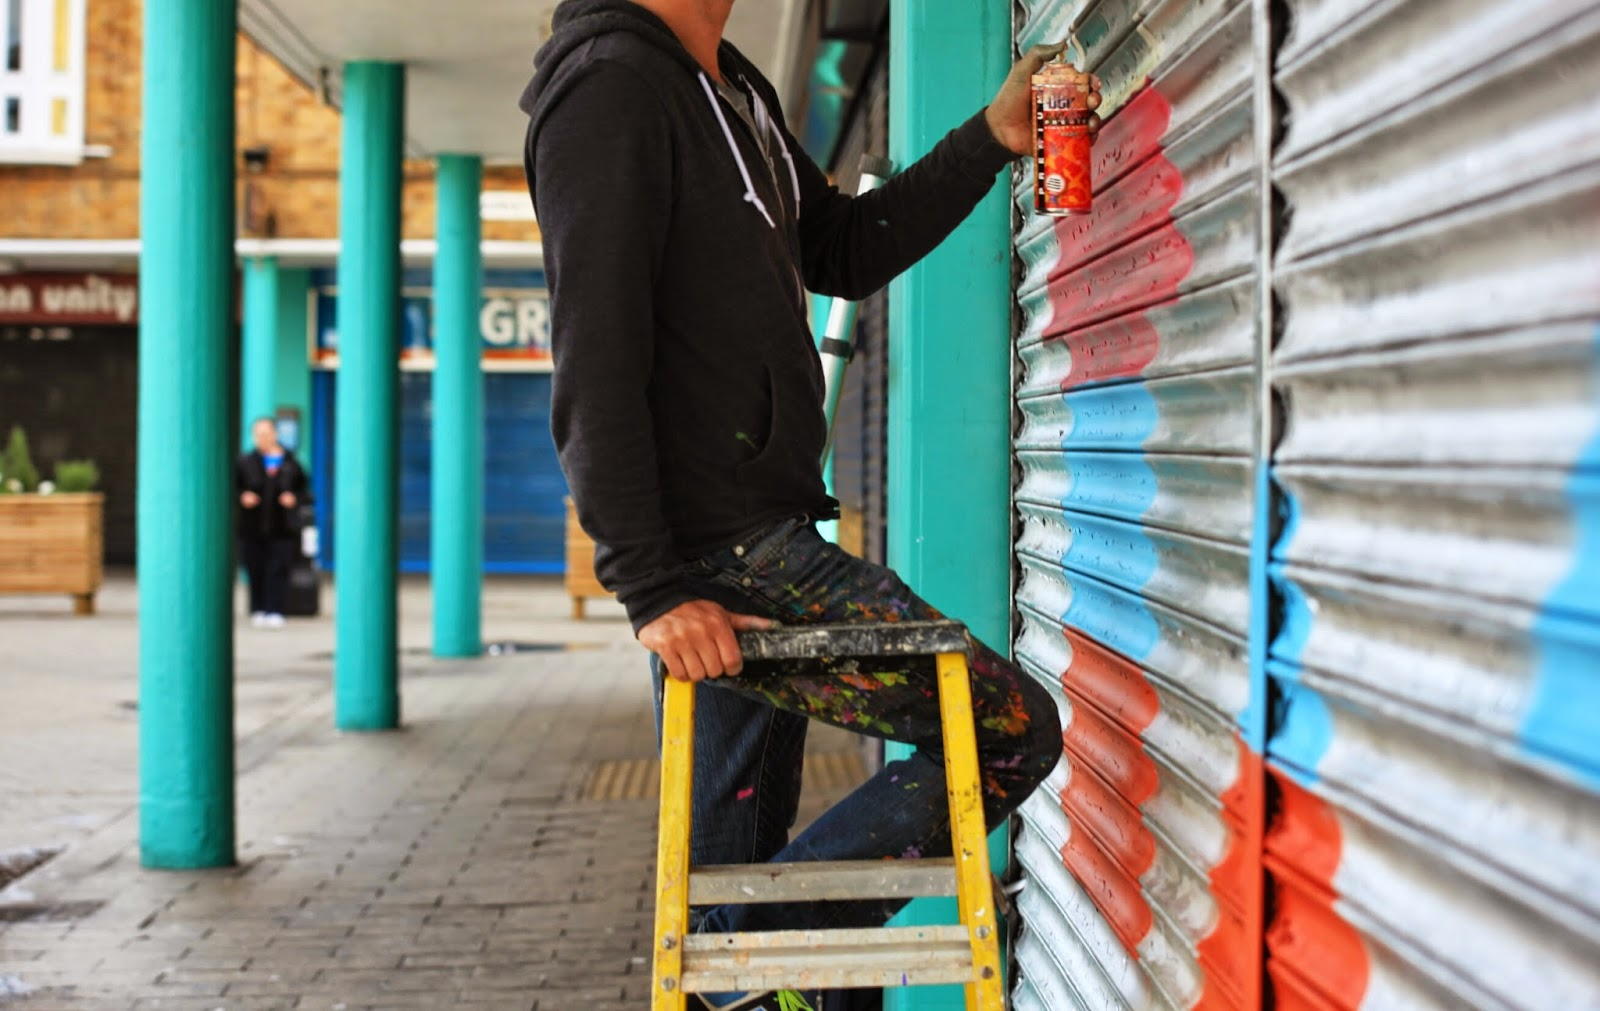 The American artist recently spent some time in London. One of the projects he was working on is to paint a few shutters at Poplar.